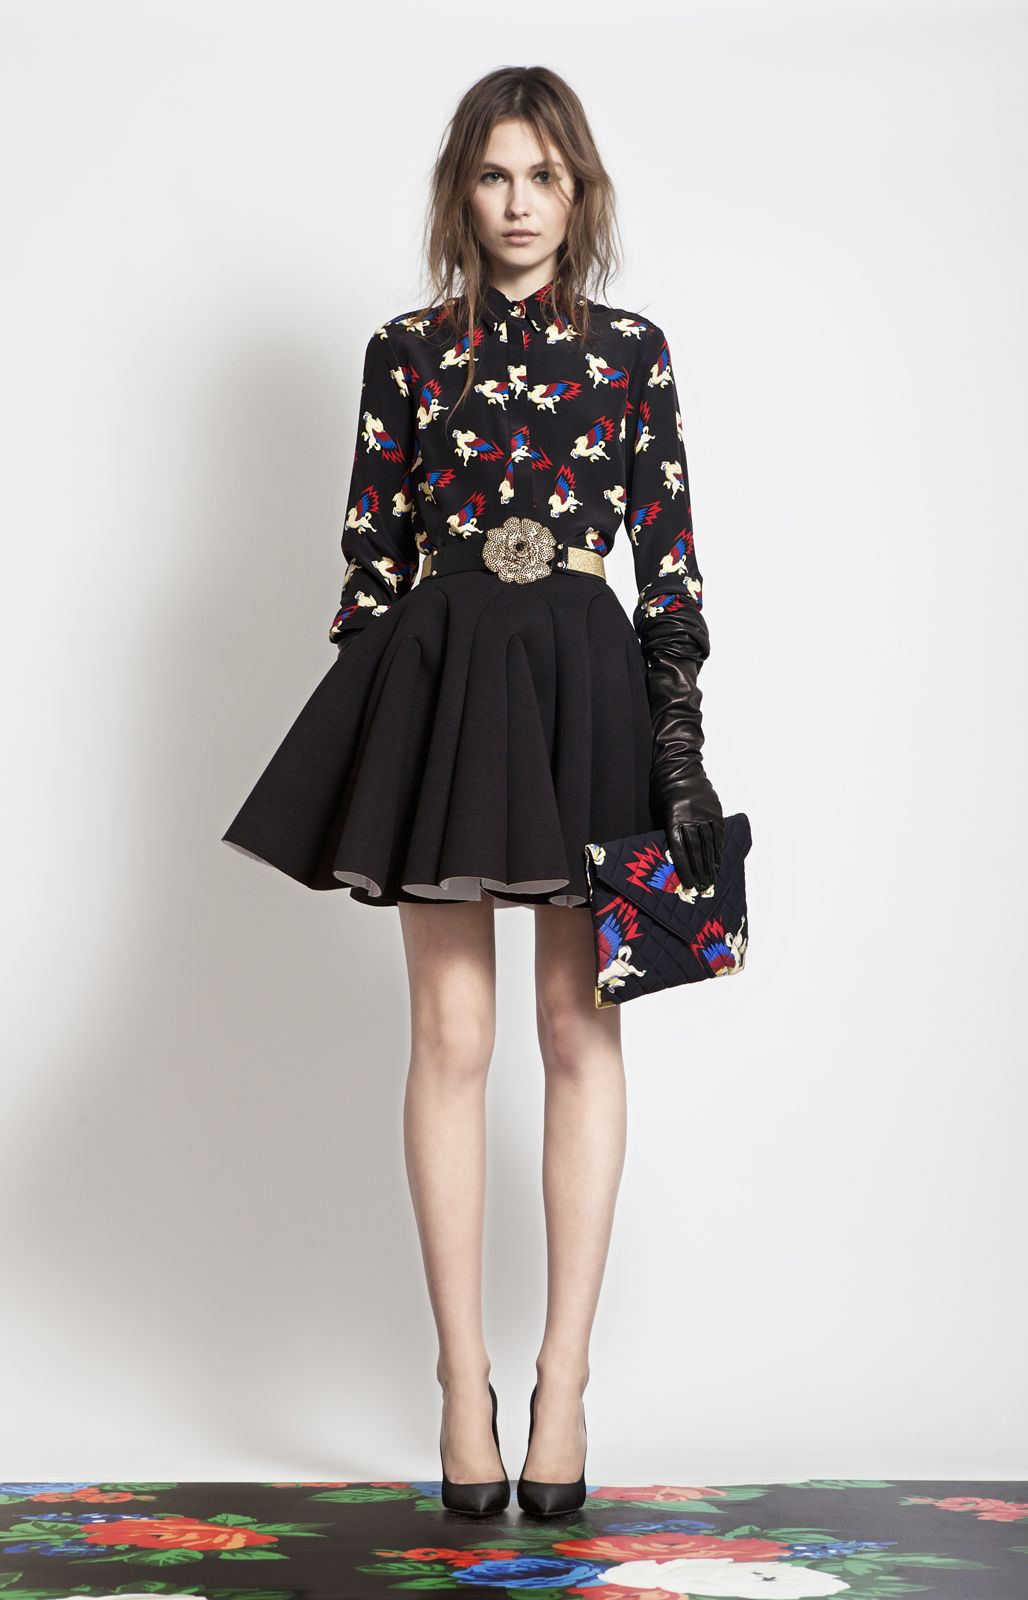 MSGM Women's Pre-Fall 2012-2013 Collection